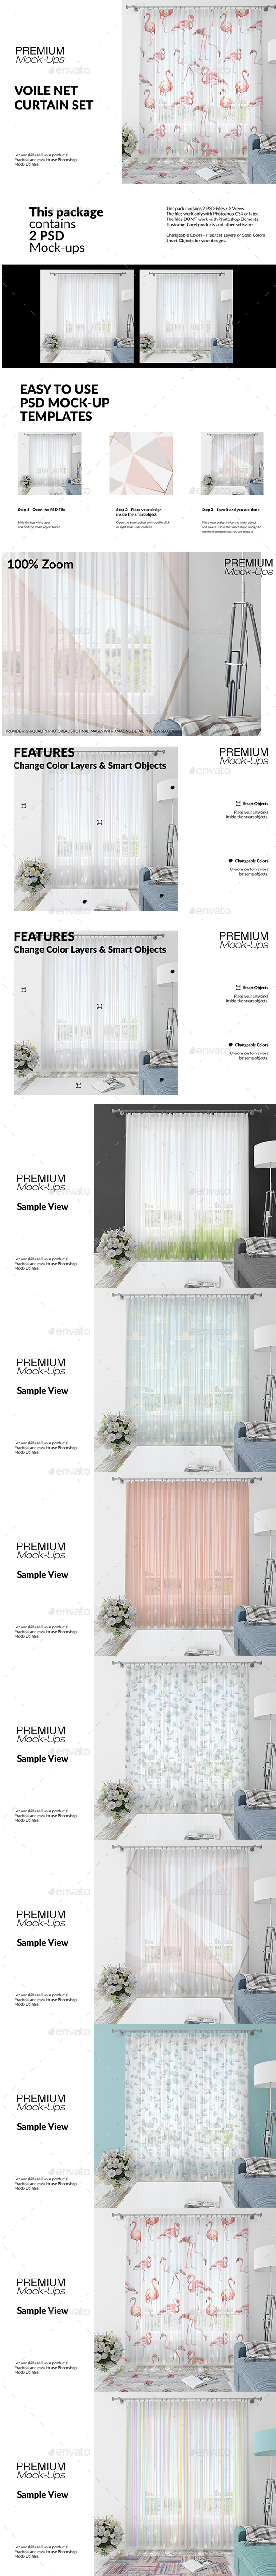 Voile Net Curtain Set - Print Product Mock-Ups